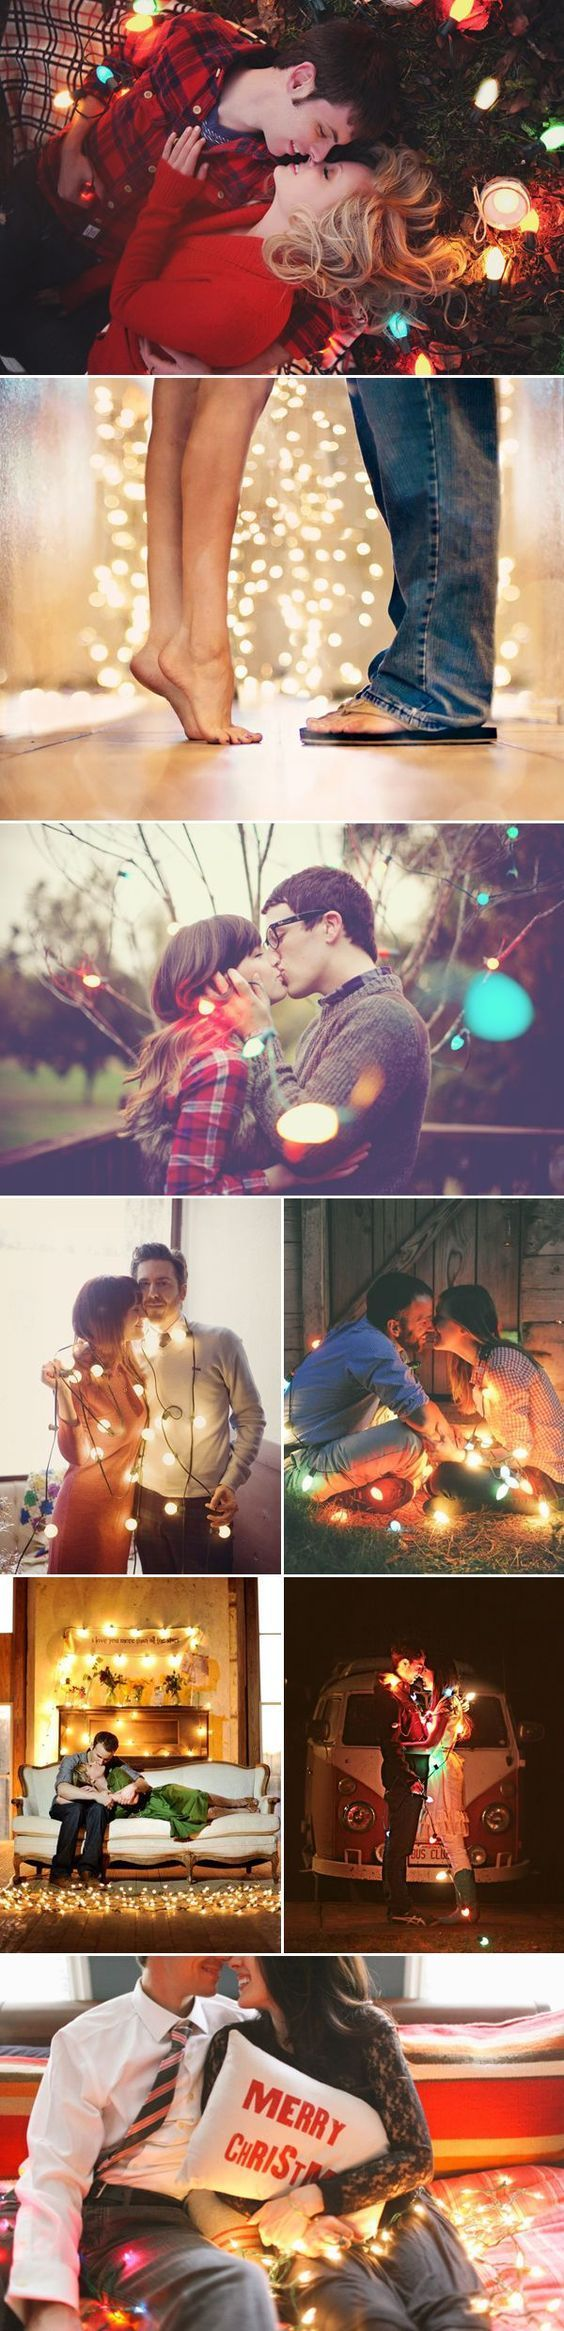 40 Cute Christmas Photo Ideas for Couples to Show Love - Christmas Lights #ParentingPhotos